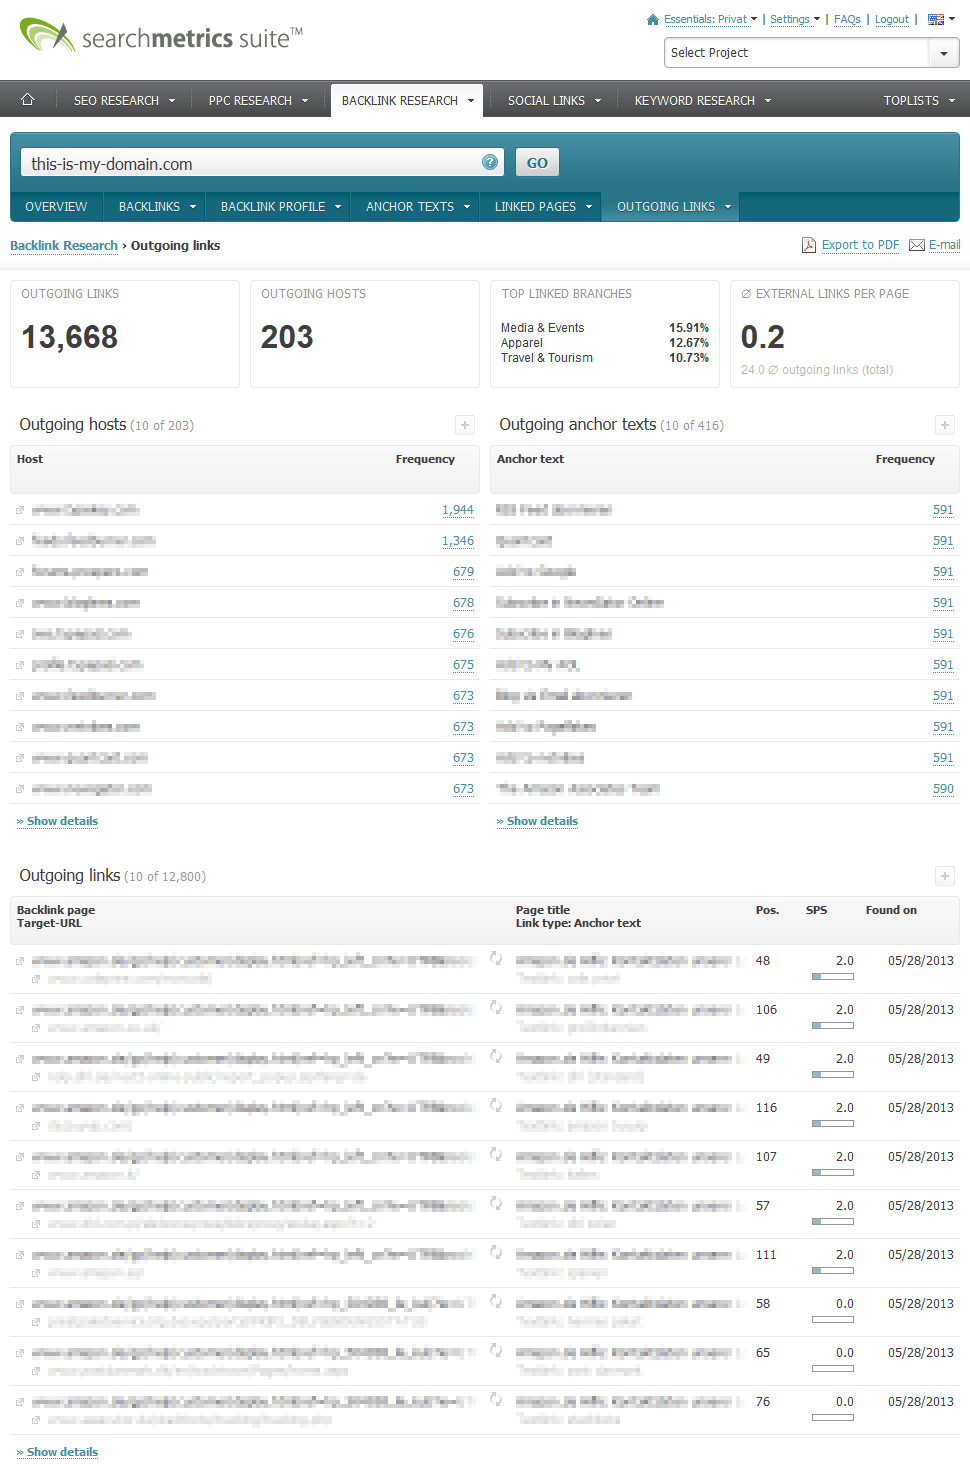 Searchmetrics Suite Outgoing Links